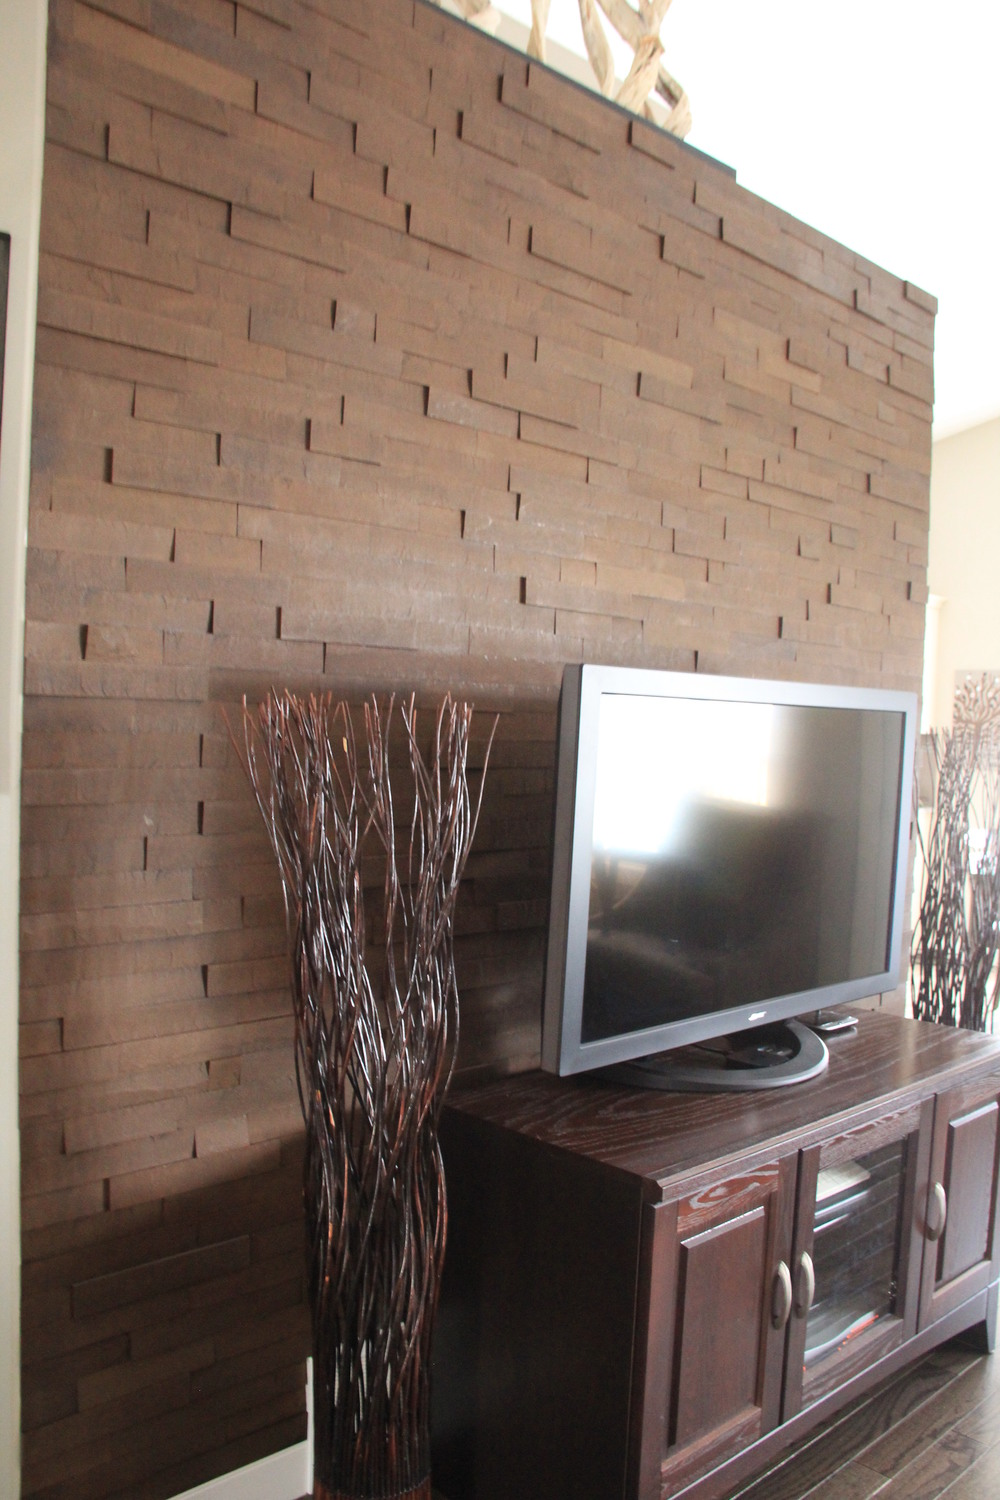 TV Wall - Whether your TV wall is a narrow wall or you want a thin strip on a much wider wall - this is an easy way to dress up any living space.